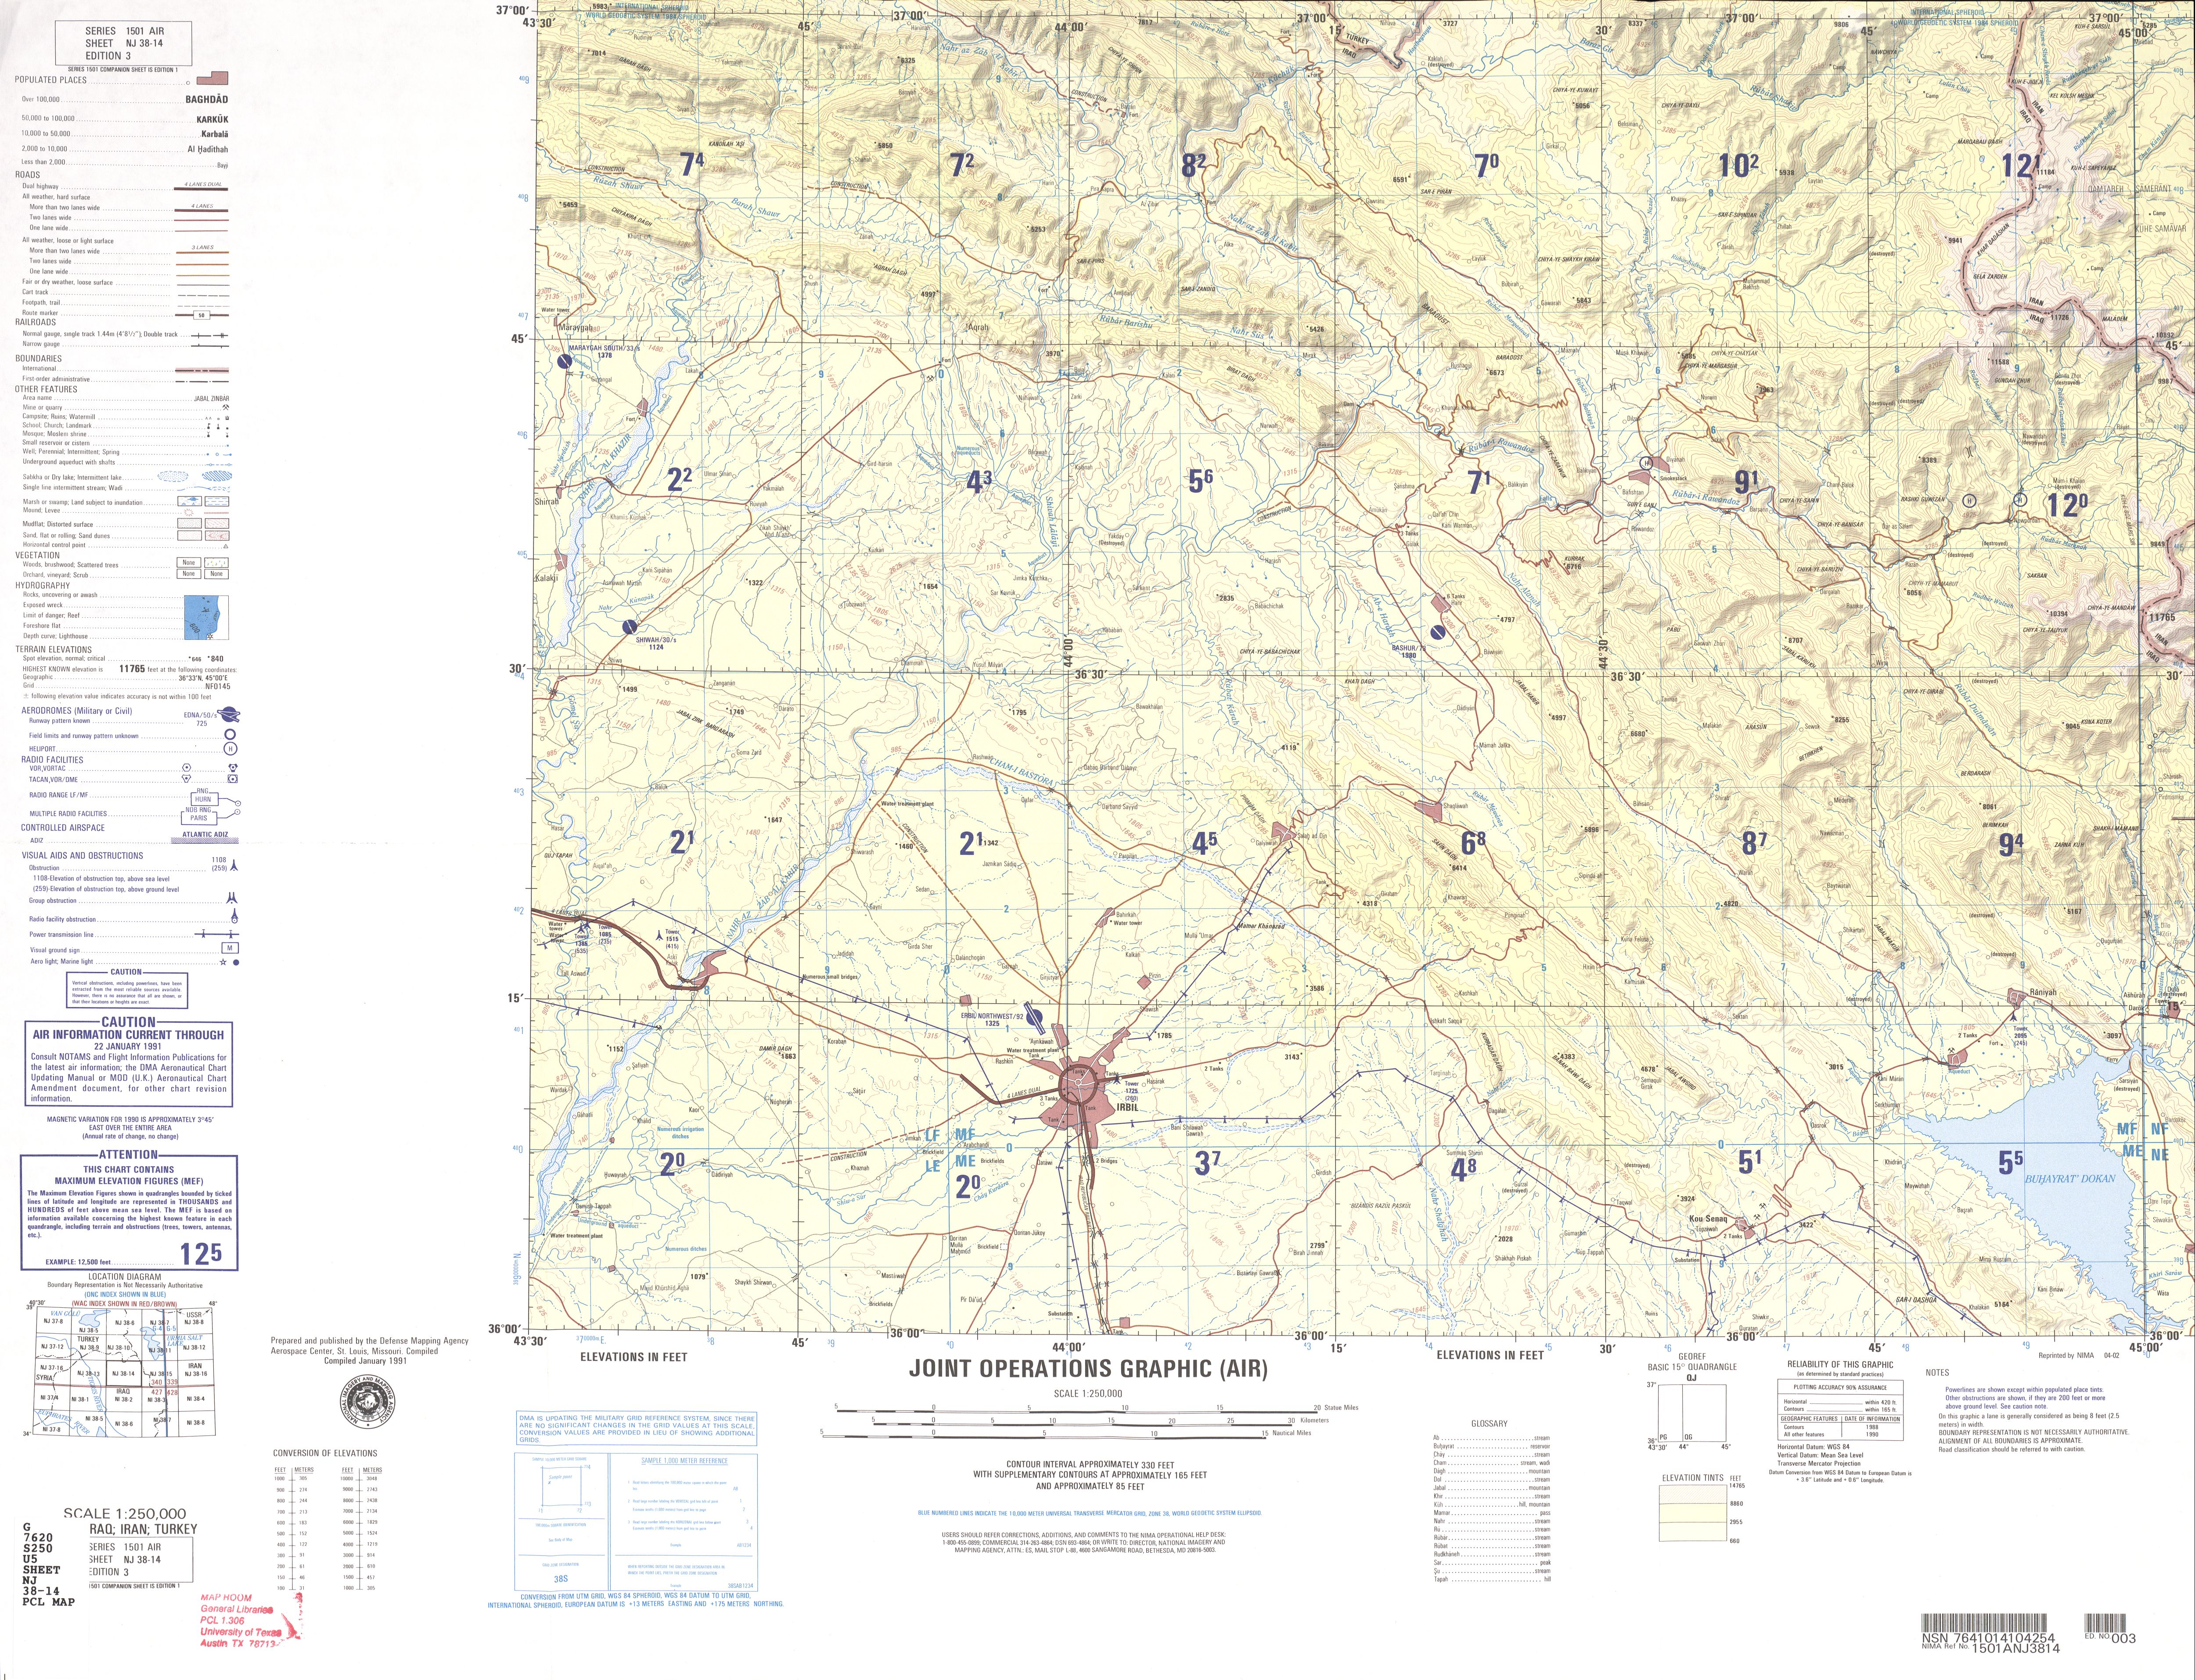 Iraq joint operations graphic perry castaeda map collection nj 38 14 irbil iraq iran sciox Gallery